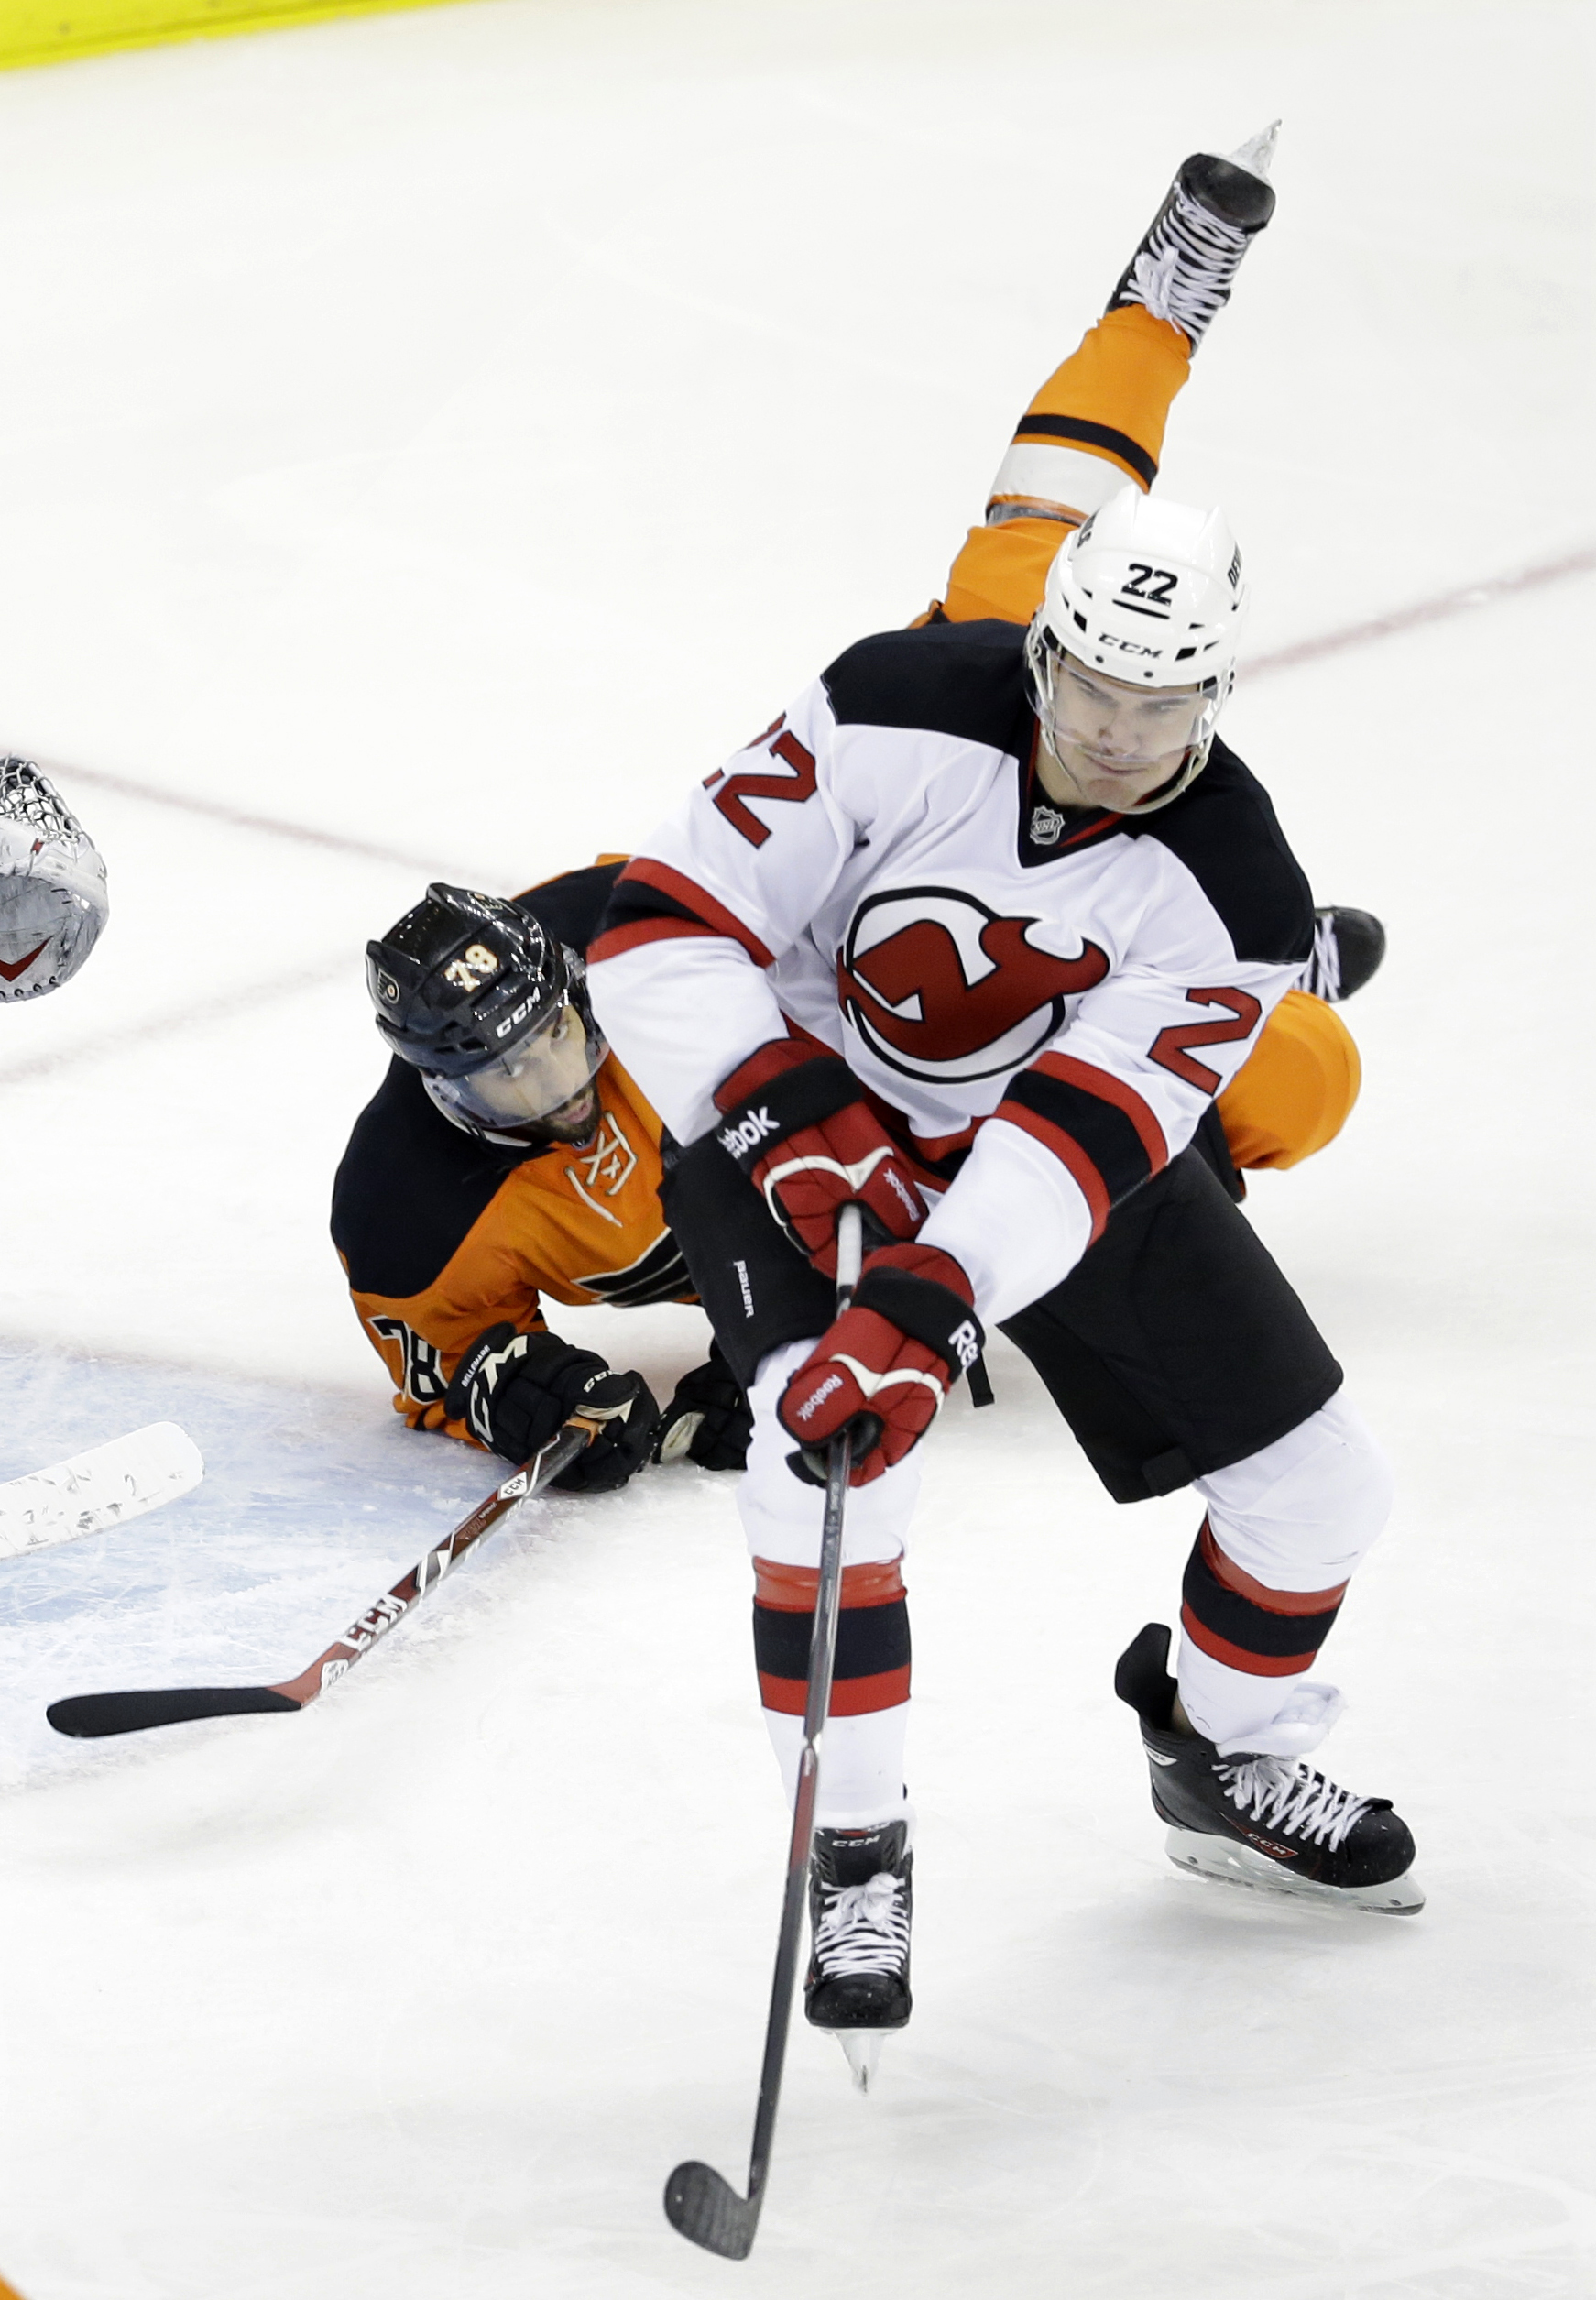 New Jersey Devils' Eric Gelinas (22) skates away after colliding with Philadelphia Flyers' Pierre-Edouard Bellemare (78), of France, during the third period of an NHL hockey game Sunday, March 8, 2015, in Newark, N.J. The Devils won 5-2. (AP Photo/Mel Eva